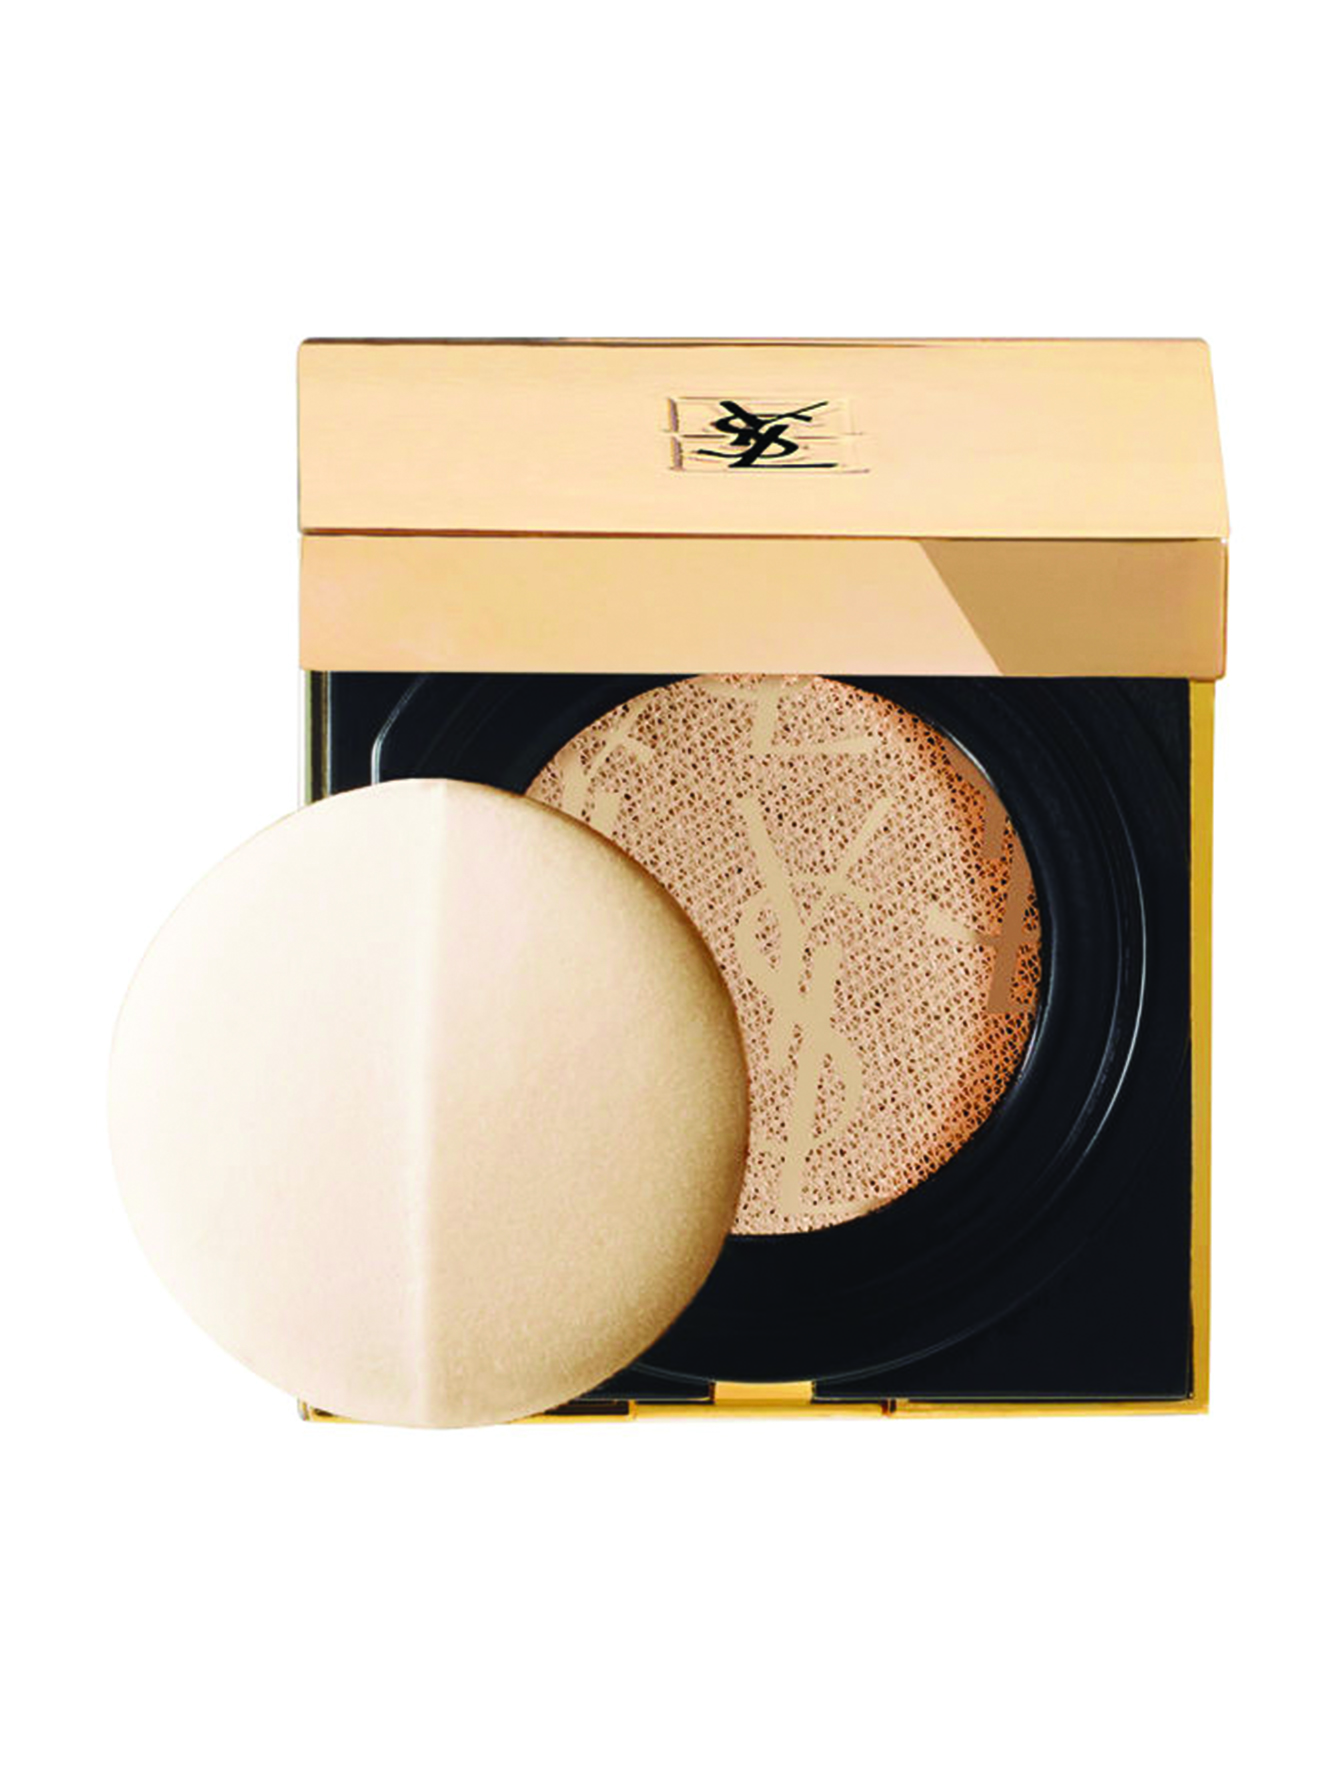 YSL Touche Eclat Cushion @ Paris Gallery - AED 269